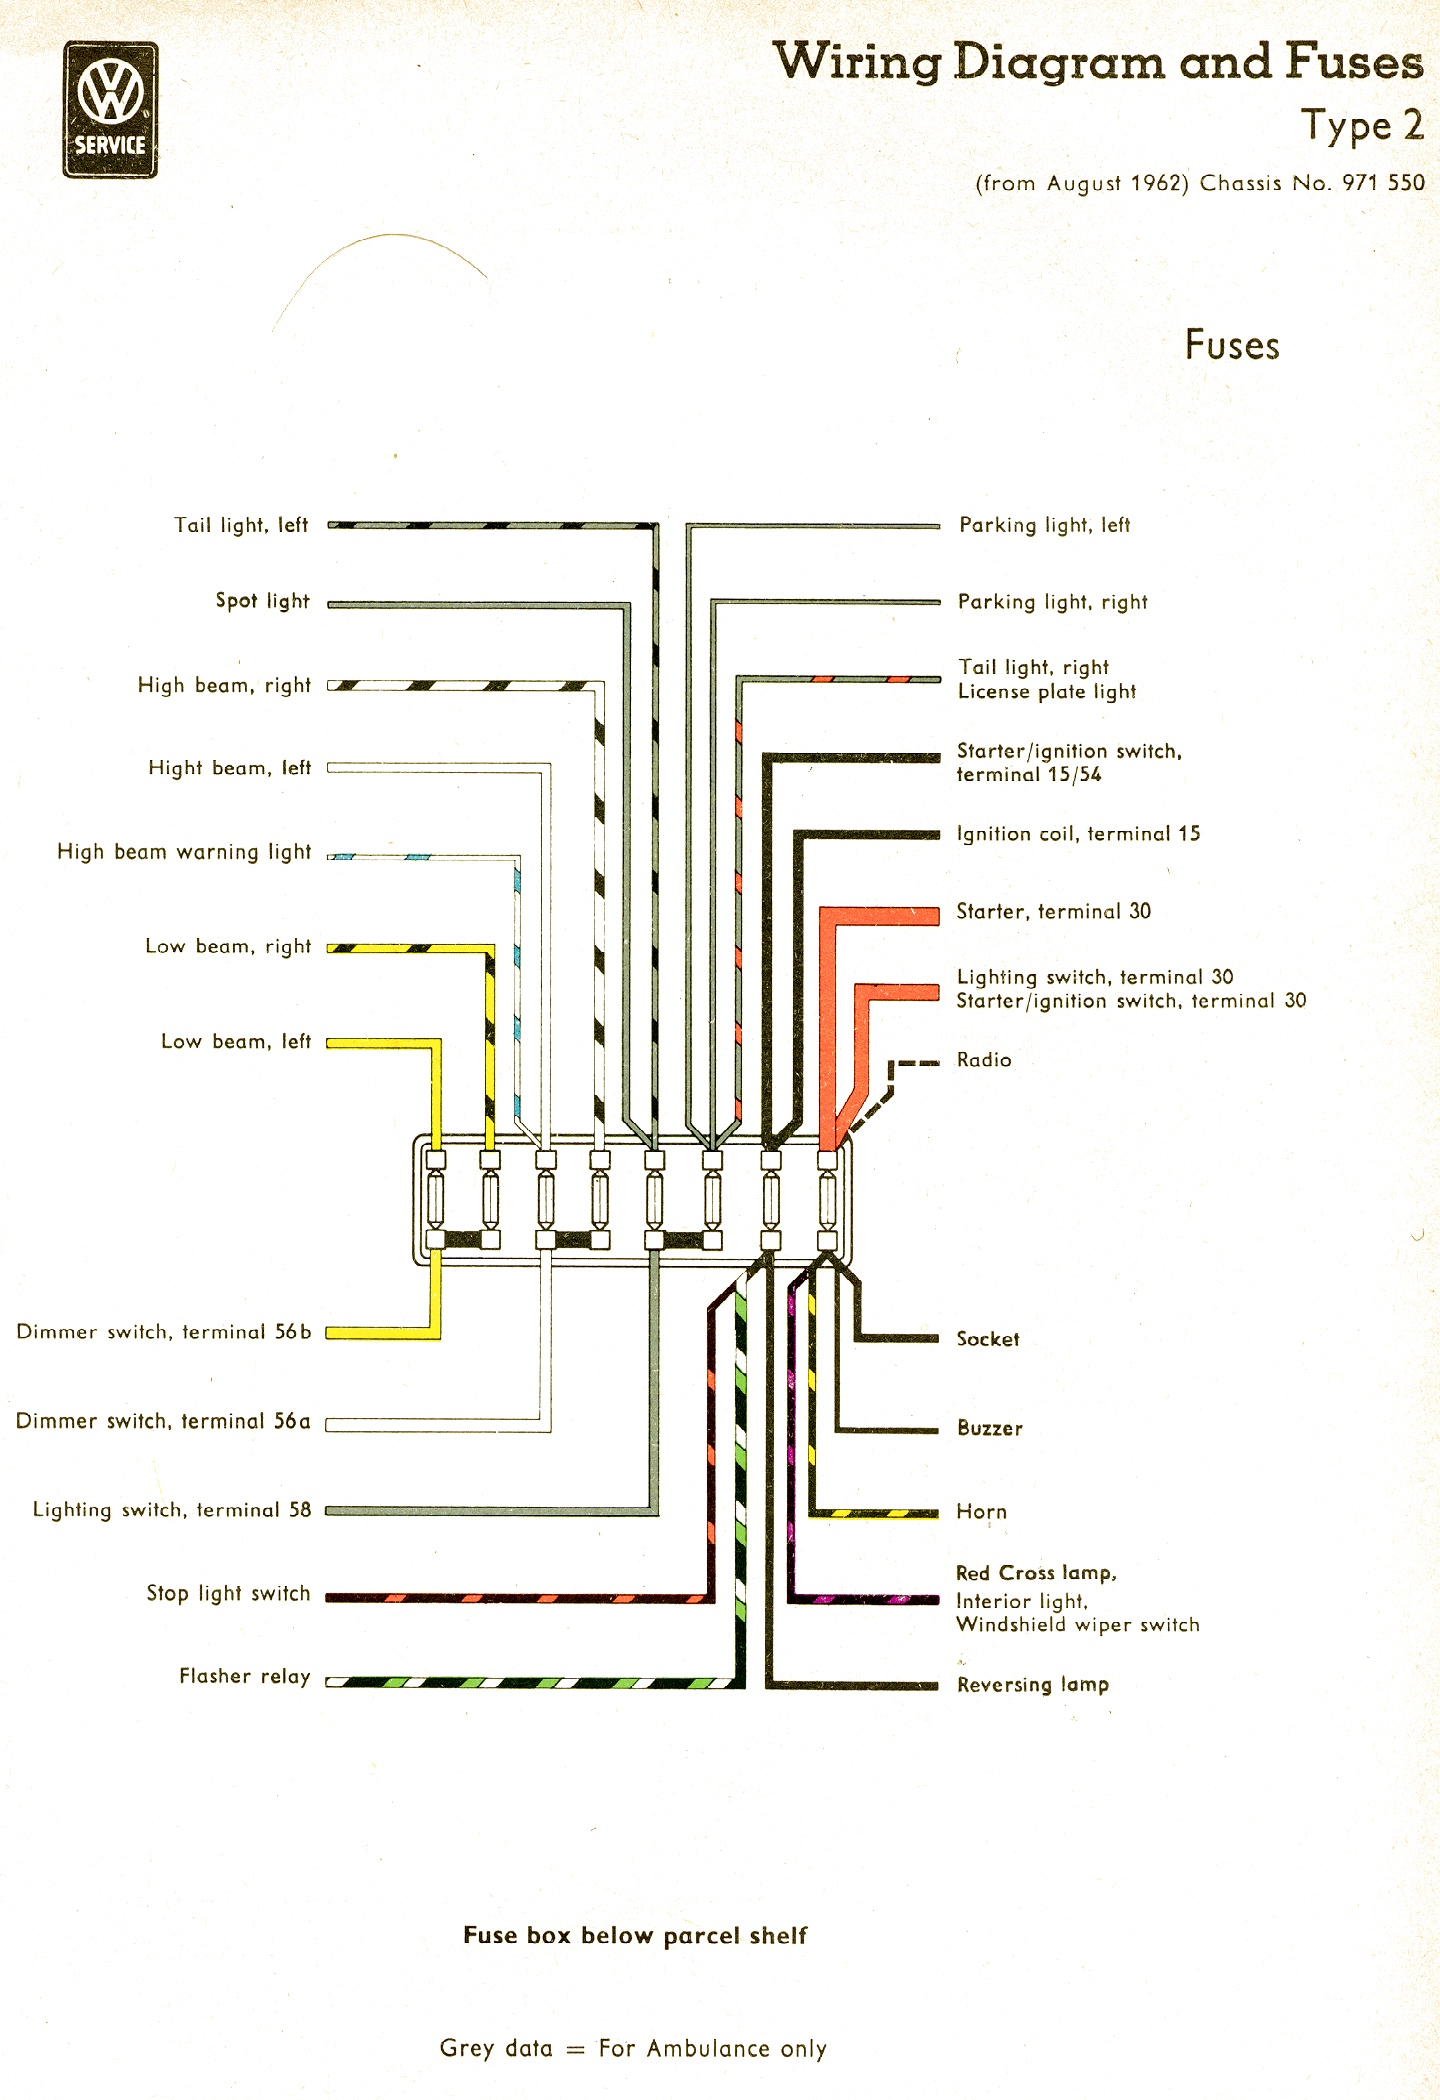 1982 Vanagon Fuse Diagram Wiring Library 1976 Pontiac Firebird Box Com Vw Bus And Other Diagrams